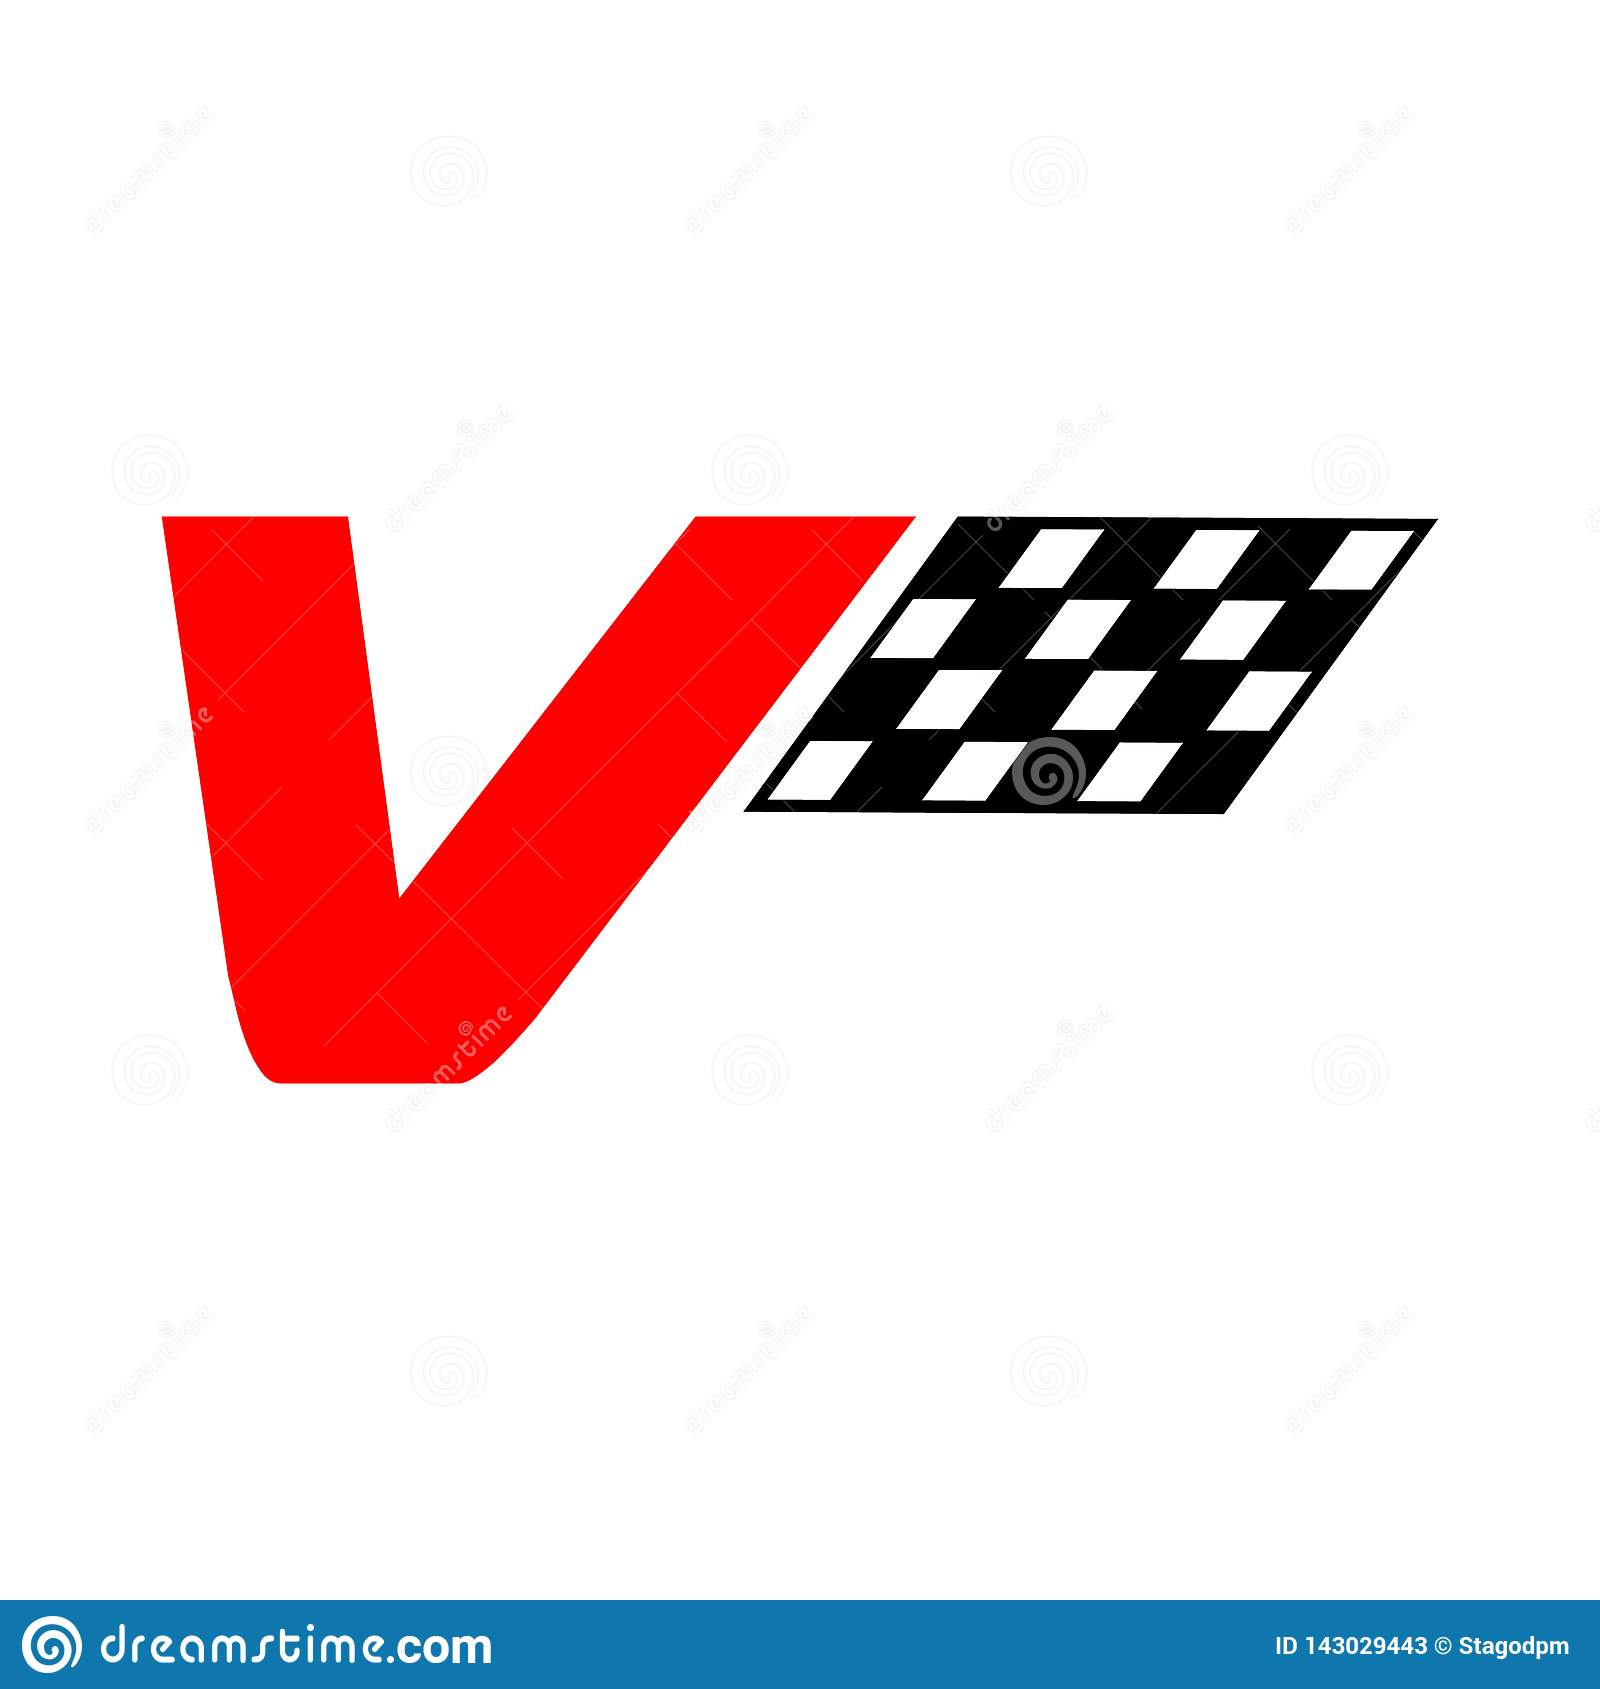 Illustration icon sign symbol of a v racing letter logo isolated on white background